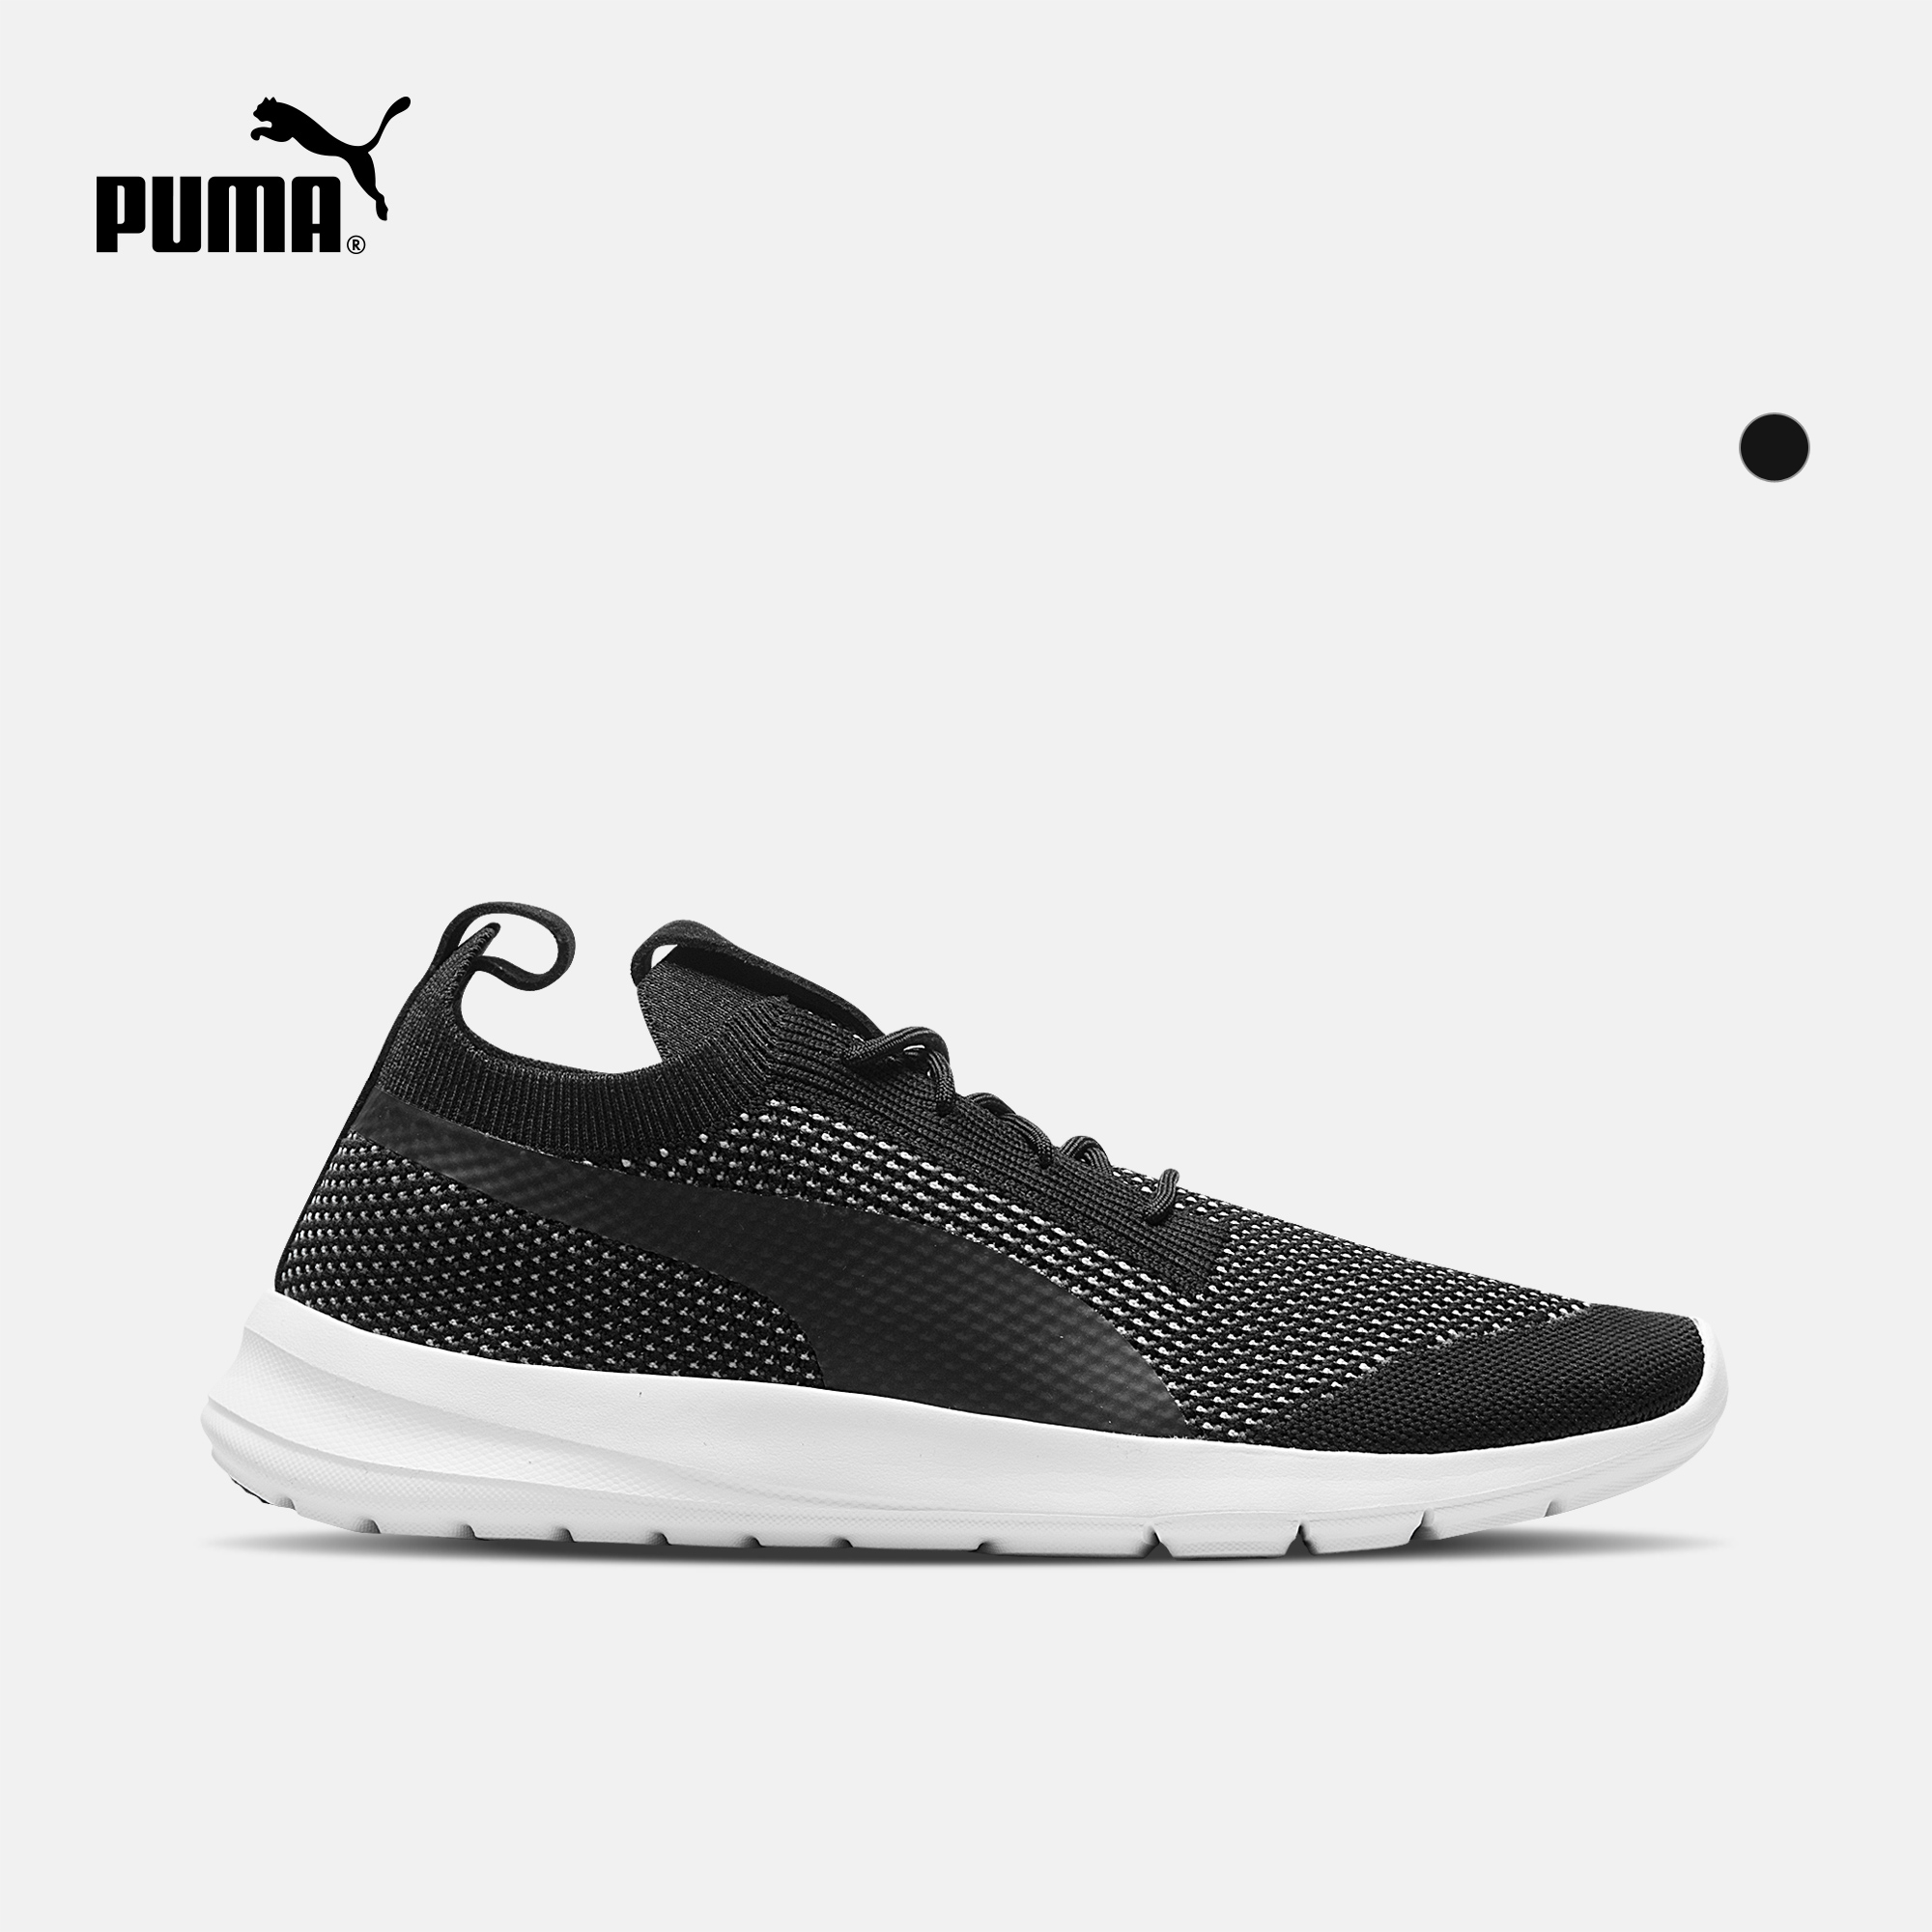 282b6e6bb436 ... PUMA Hummer Official Men s and Women s Sports Shoes Duplex evoKNIT  362547 ...